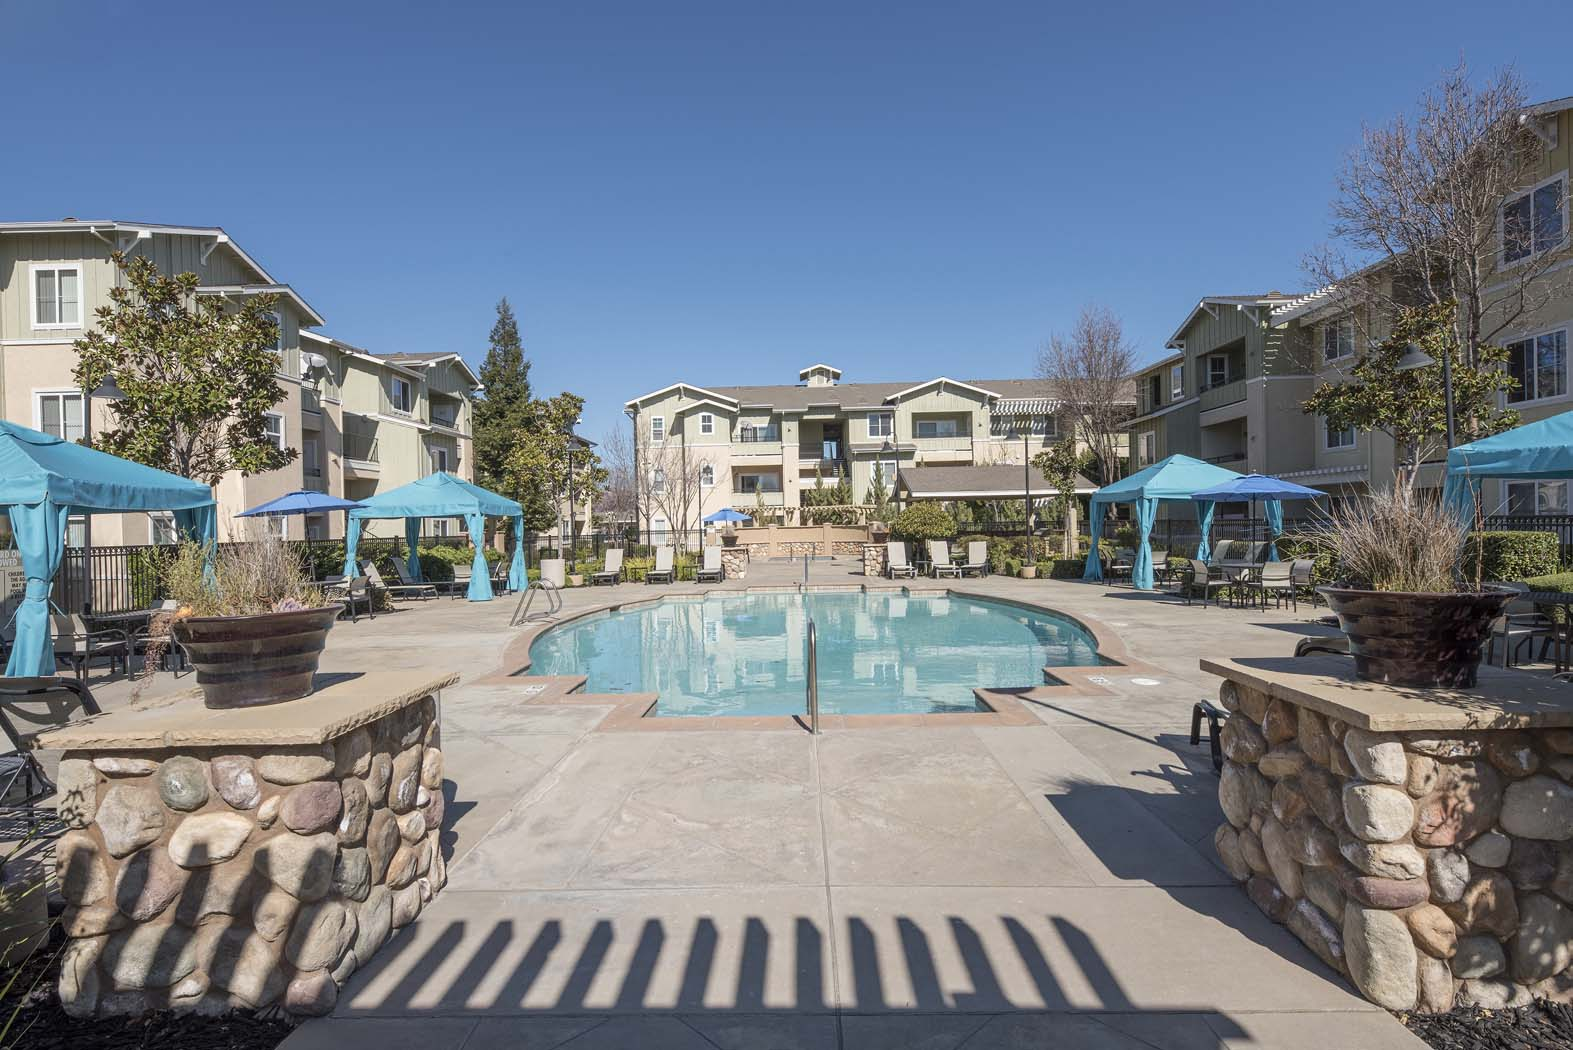 Picturesque Pool And Cabana Setting at Waterstone Apartment Homes, Tracy, CA, 95377